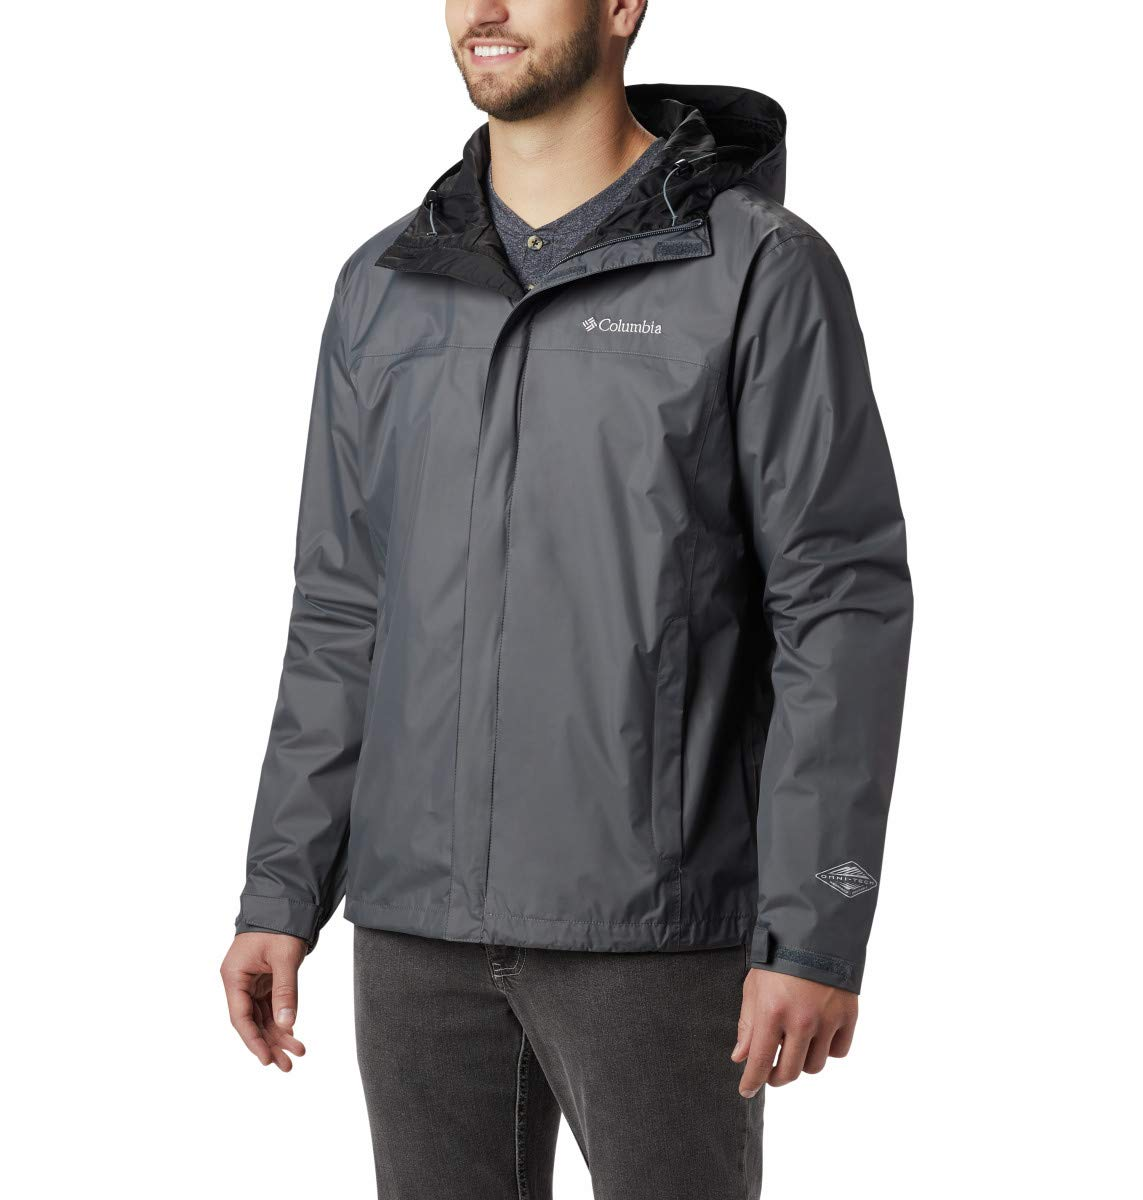 Columbia Men's Watertight II Waterproof, Breathable Rain Jacket, Graphite, Large by Columbia